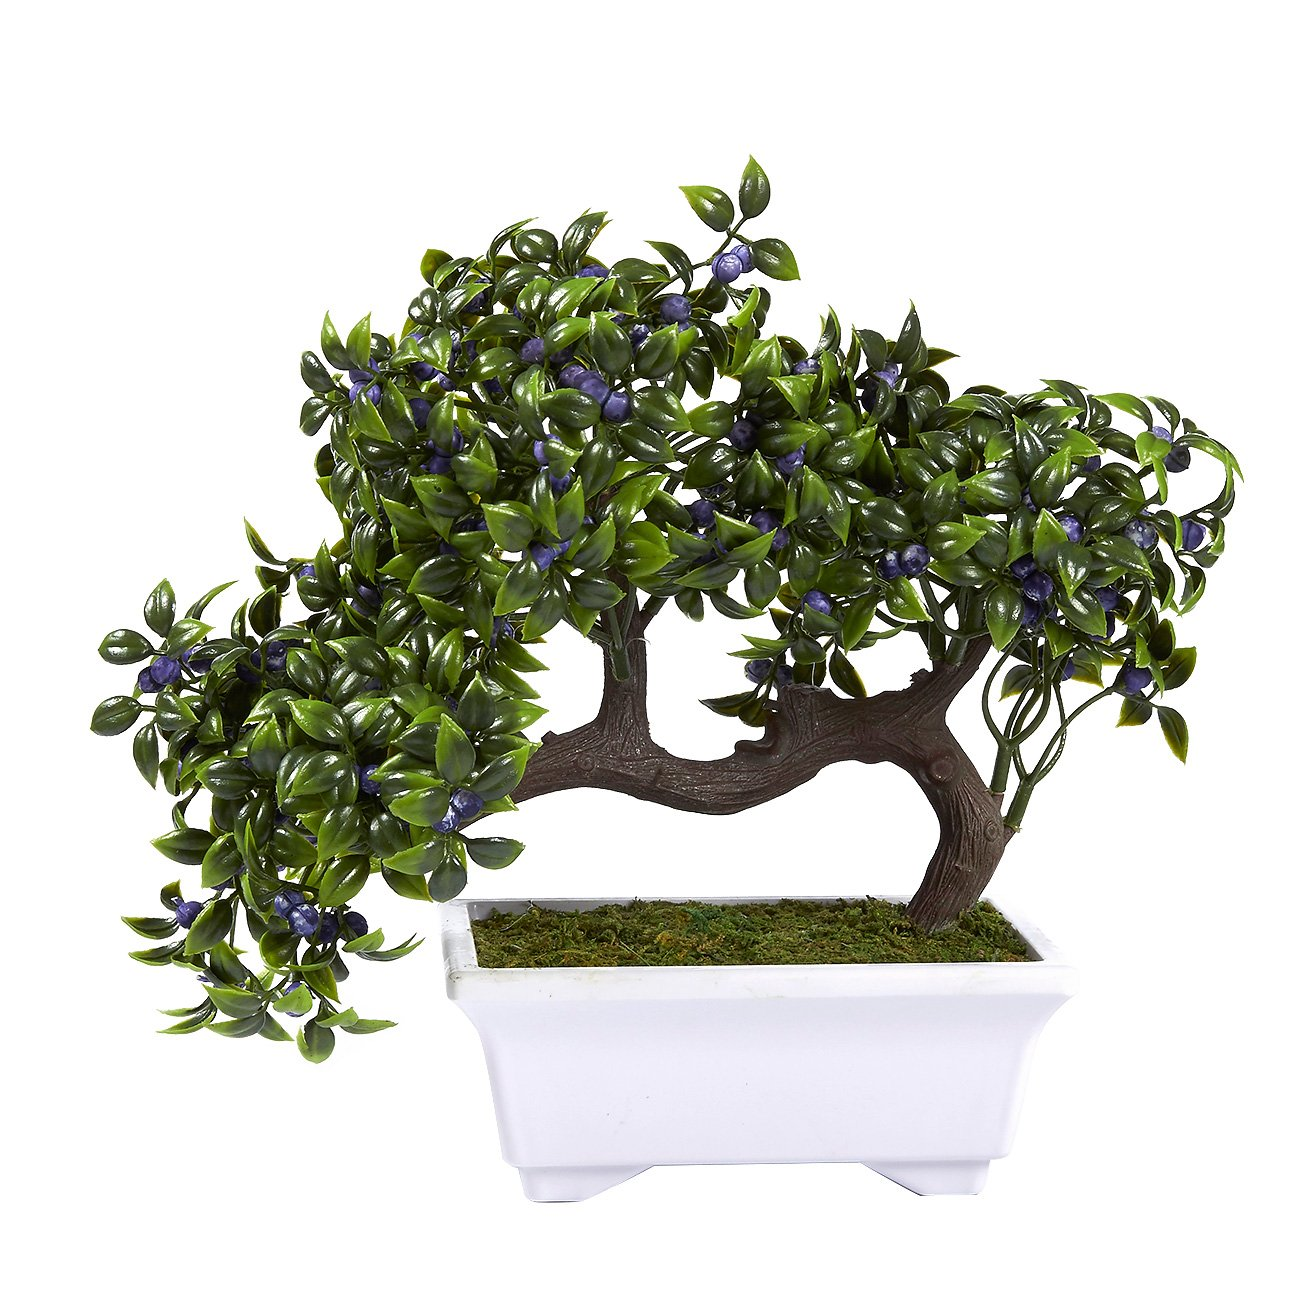 Artificial Bonsai Tree - Fake Plant Decoration, Potted Artificial House Plants for Home D?cor Indoor, Ficus Bonsai Tree Plant for Decoration, Desktop Display, Zen Garden Decor - 10 x 6 x 8 Inches Juvale